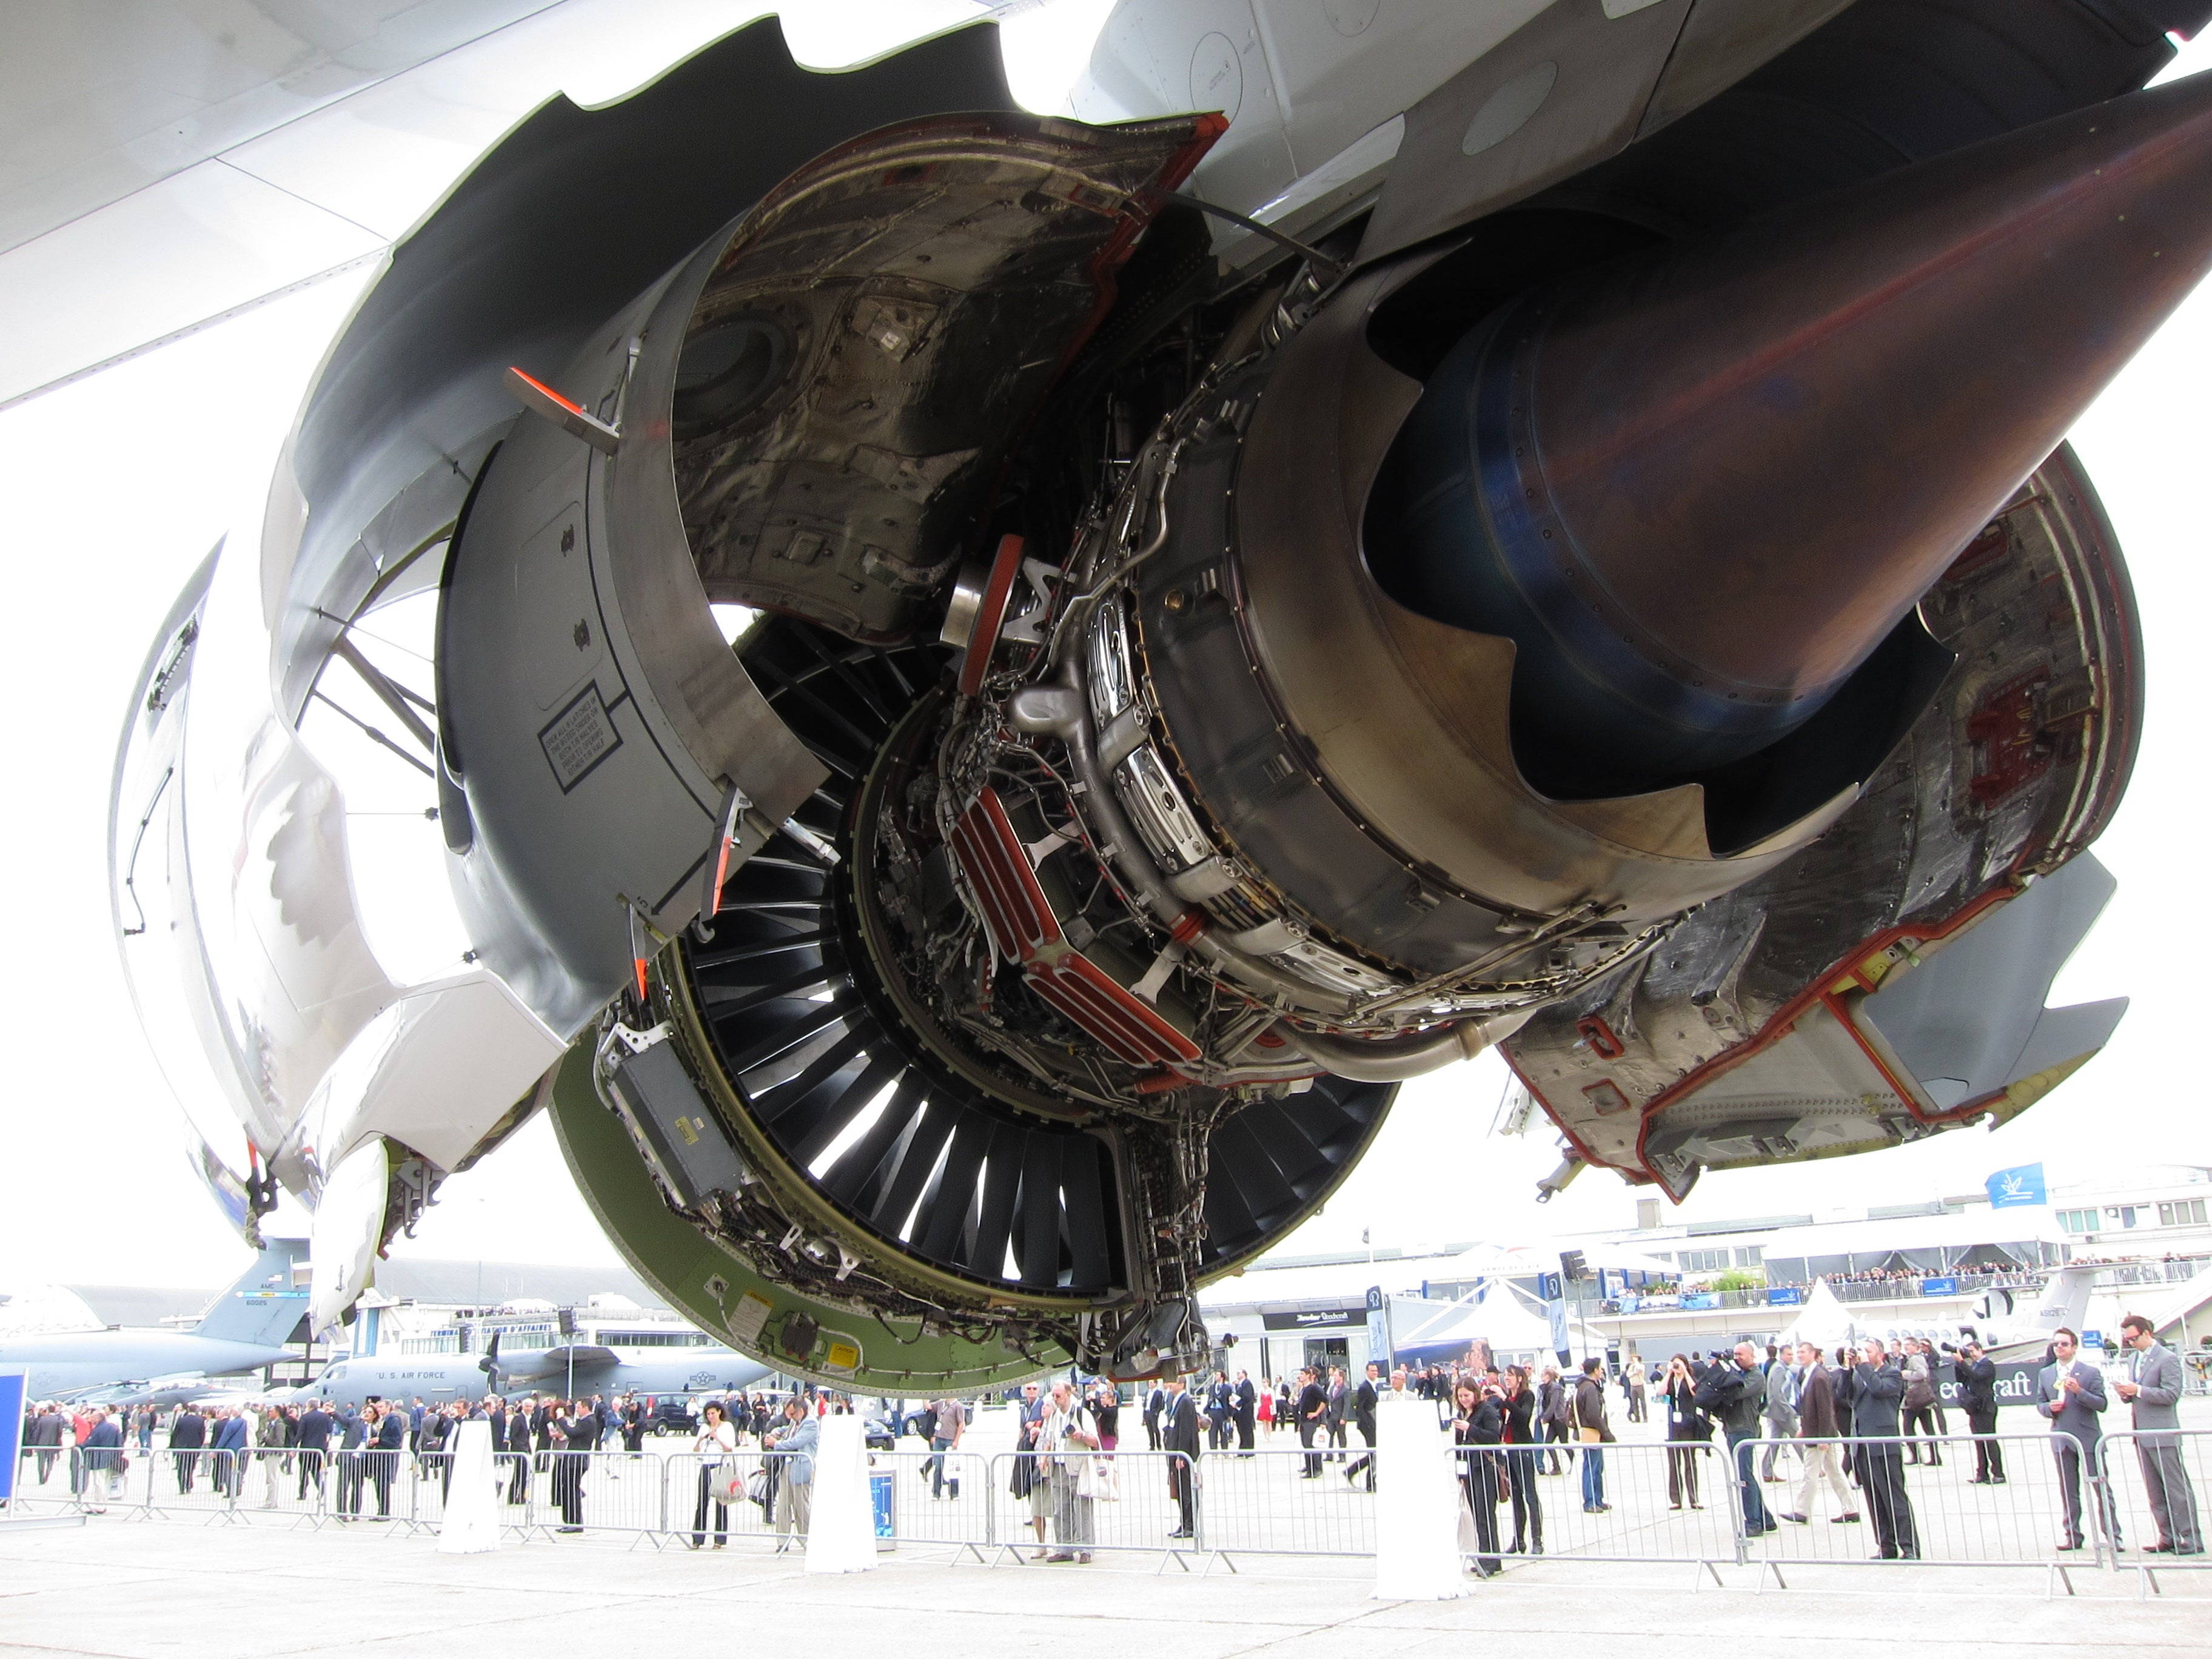 Cool photos of jet engines with their shell open